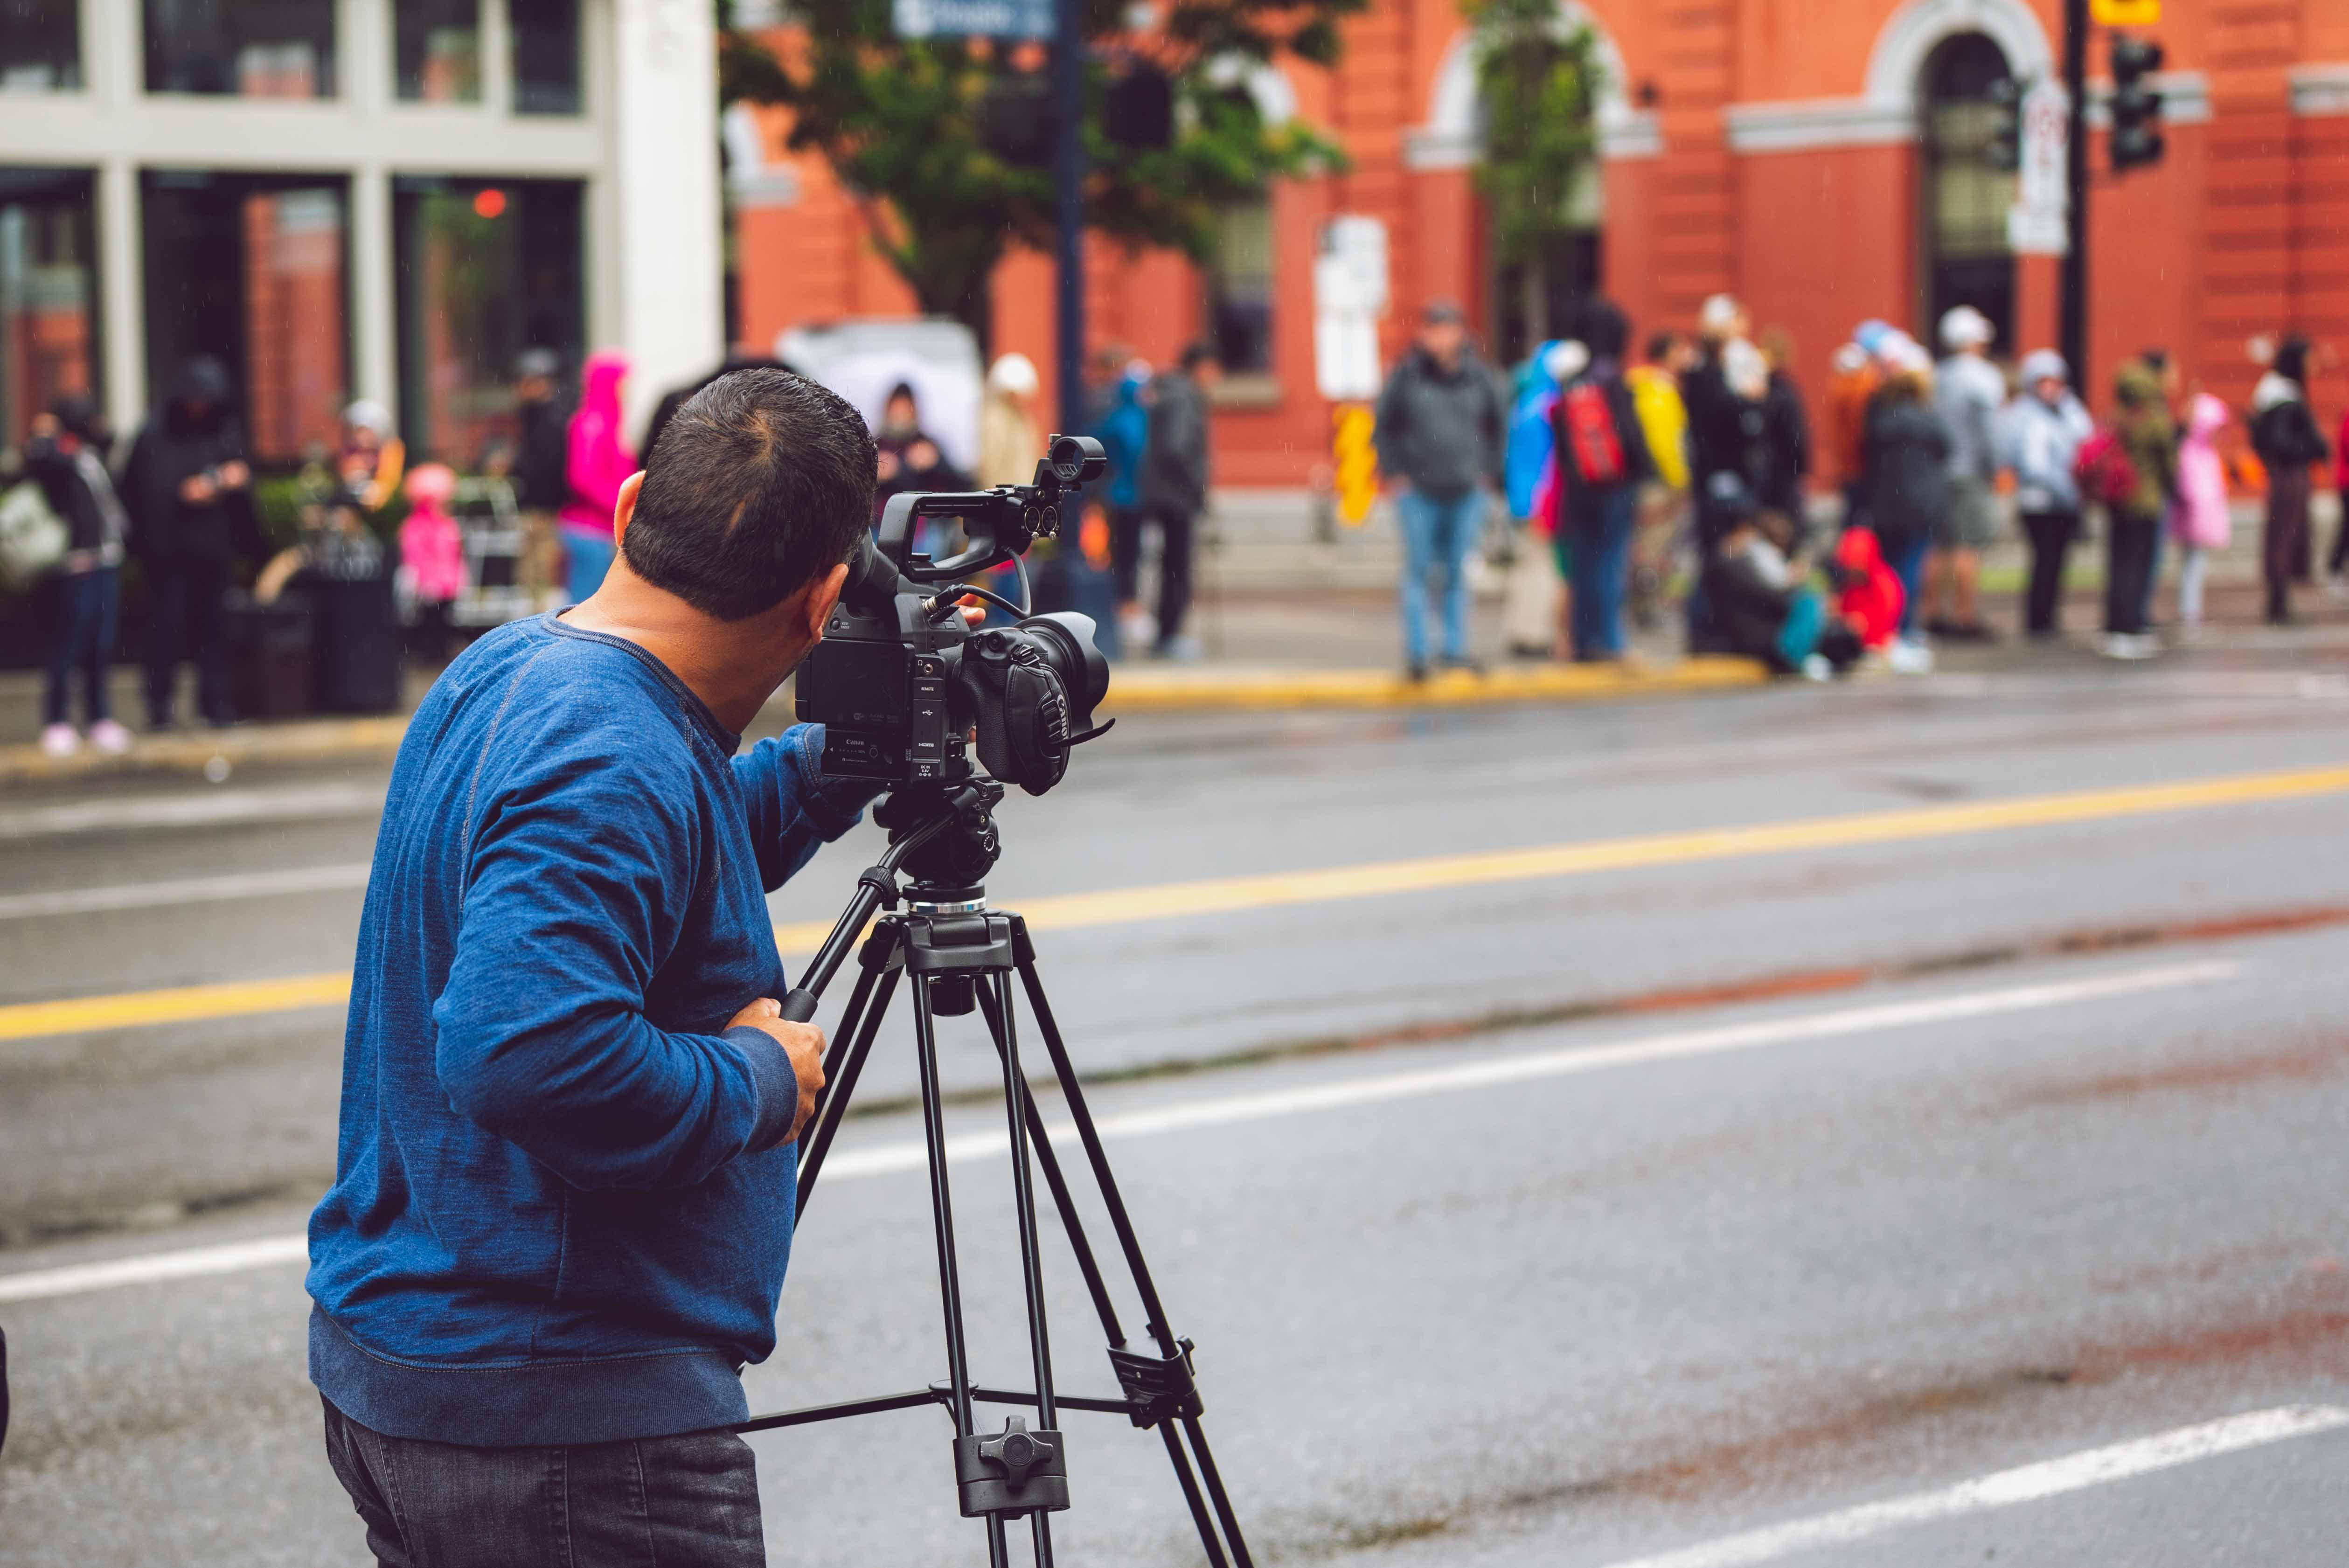 Camera Man With Video Camera on Tripod Position by the Street Across People at the Sidewalk